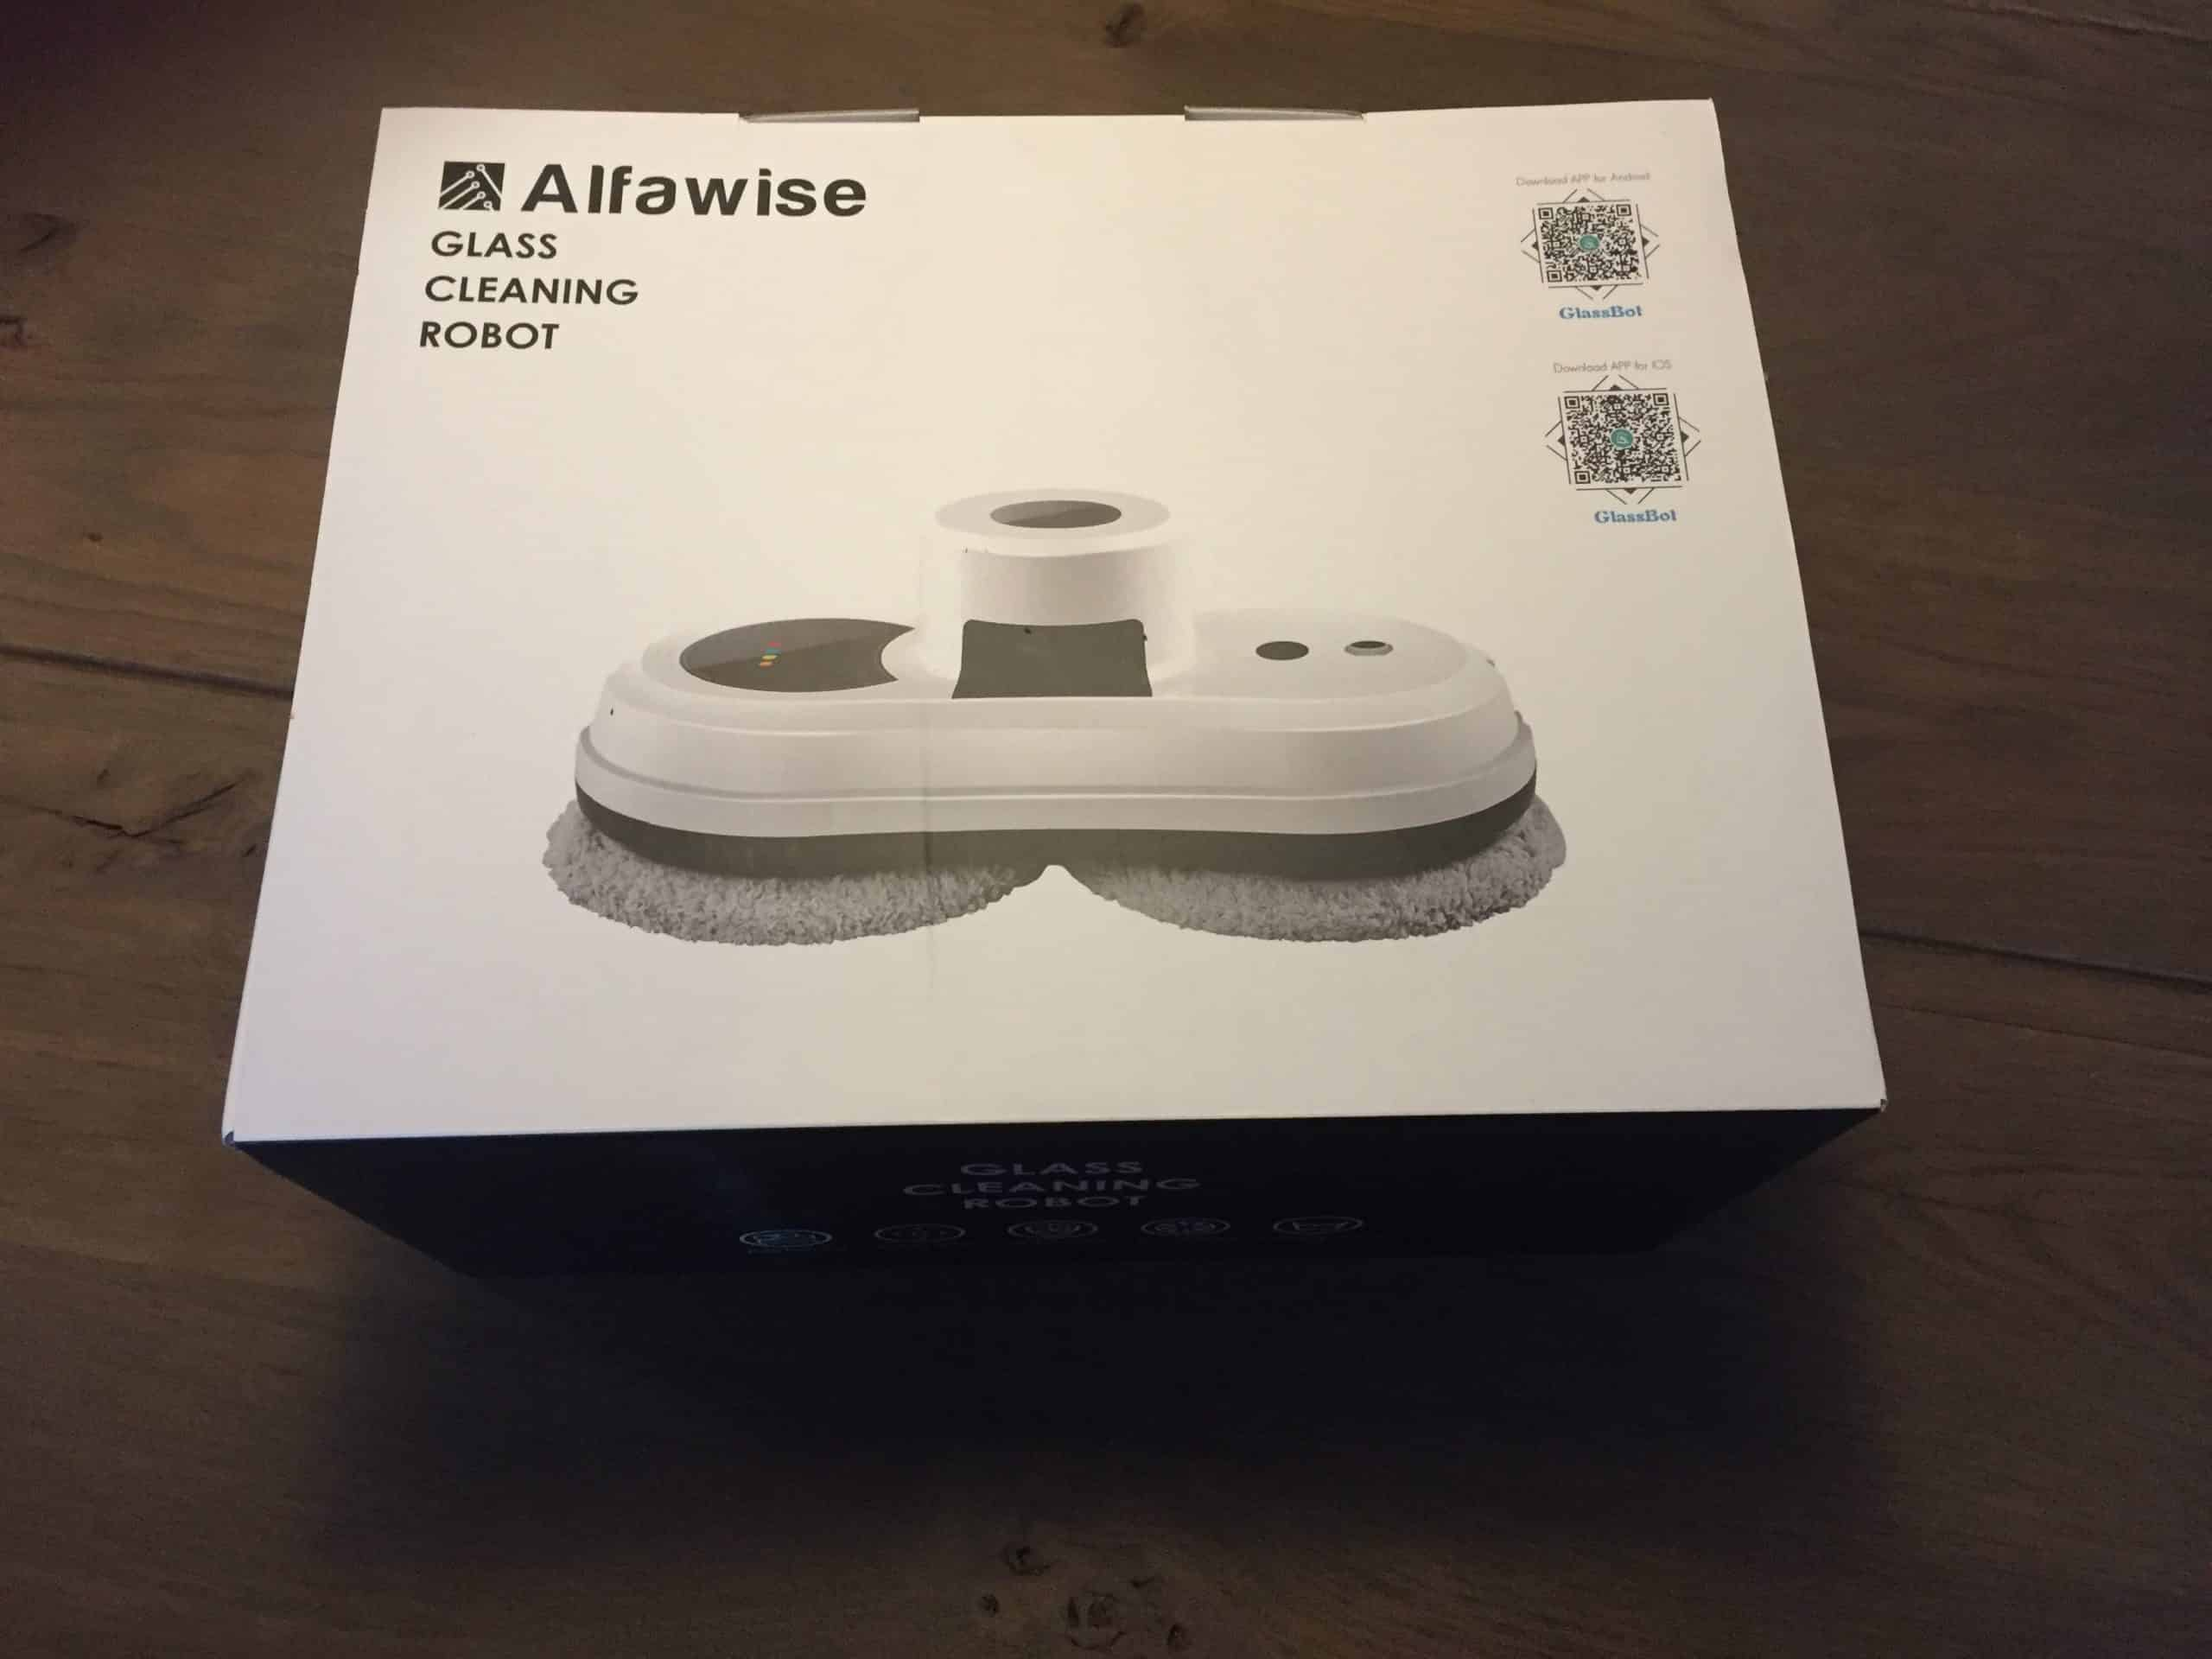 Window Cleaning robot s60 in box